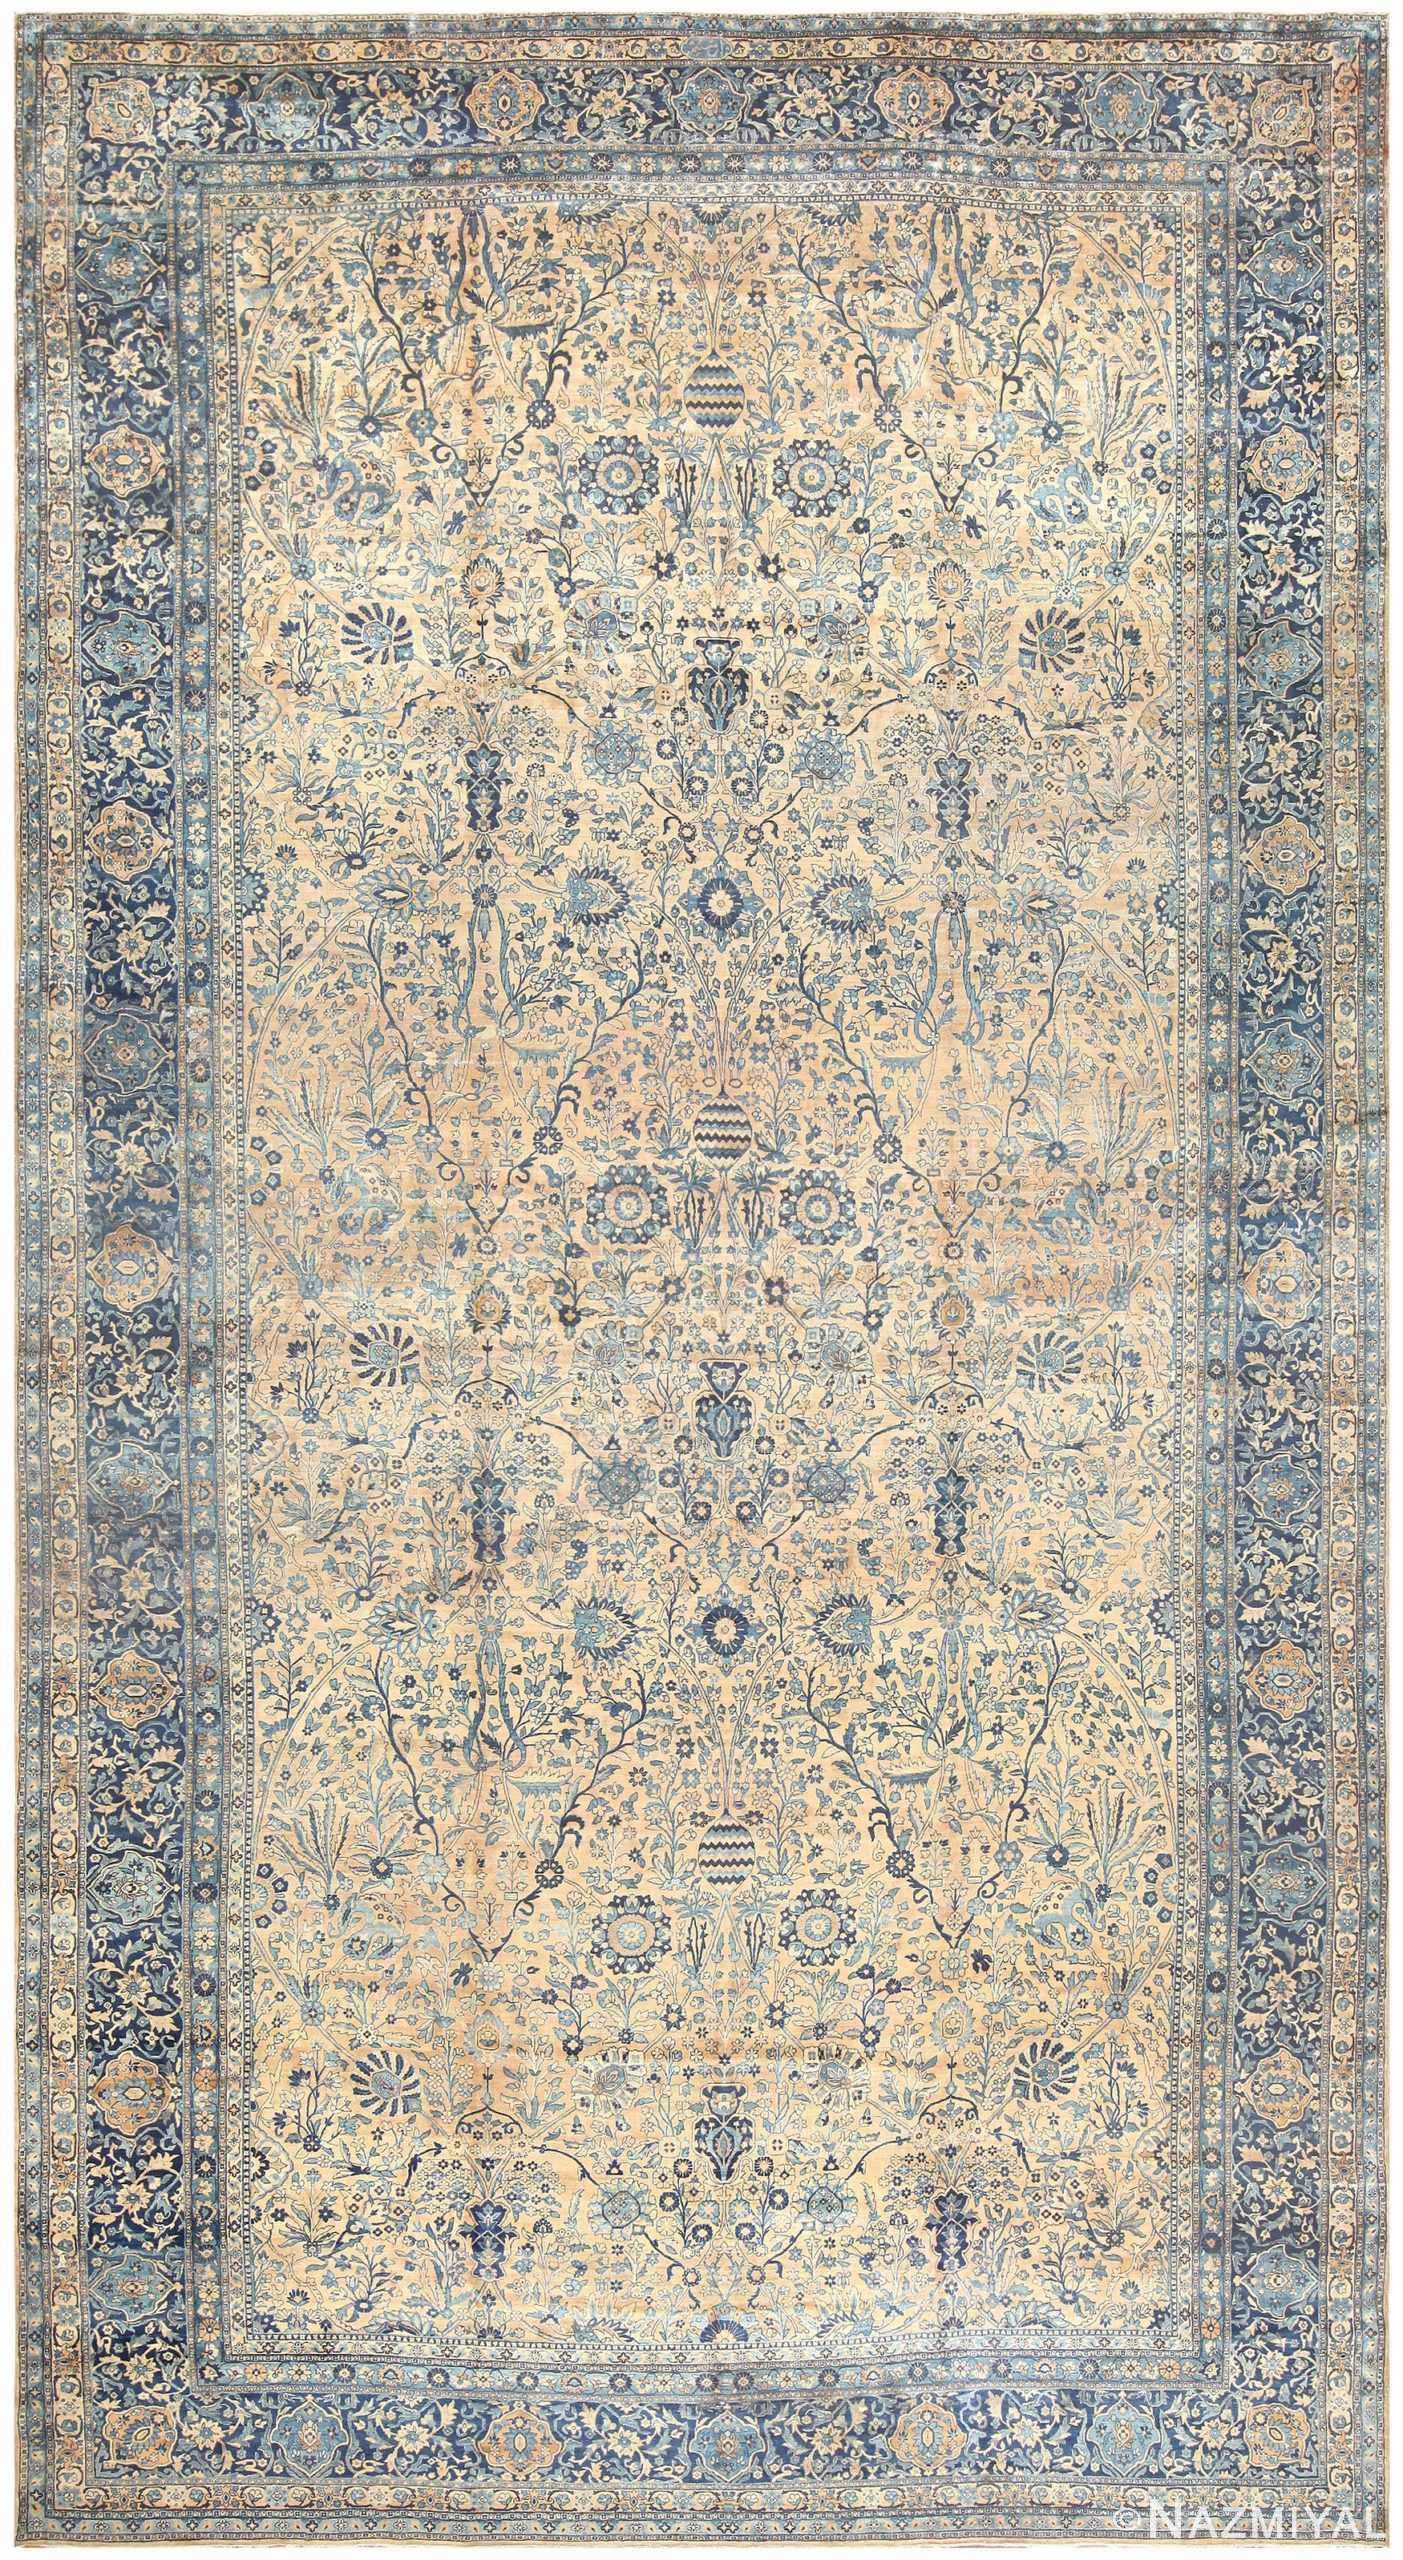 19th Century Persian Kerman Carpet 50113 Nazmiyal